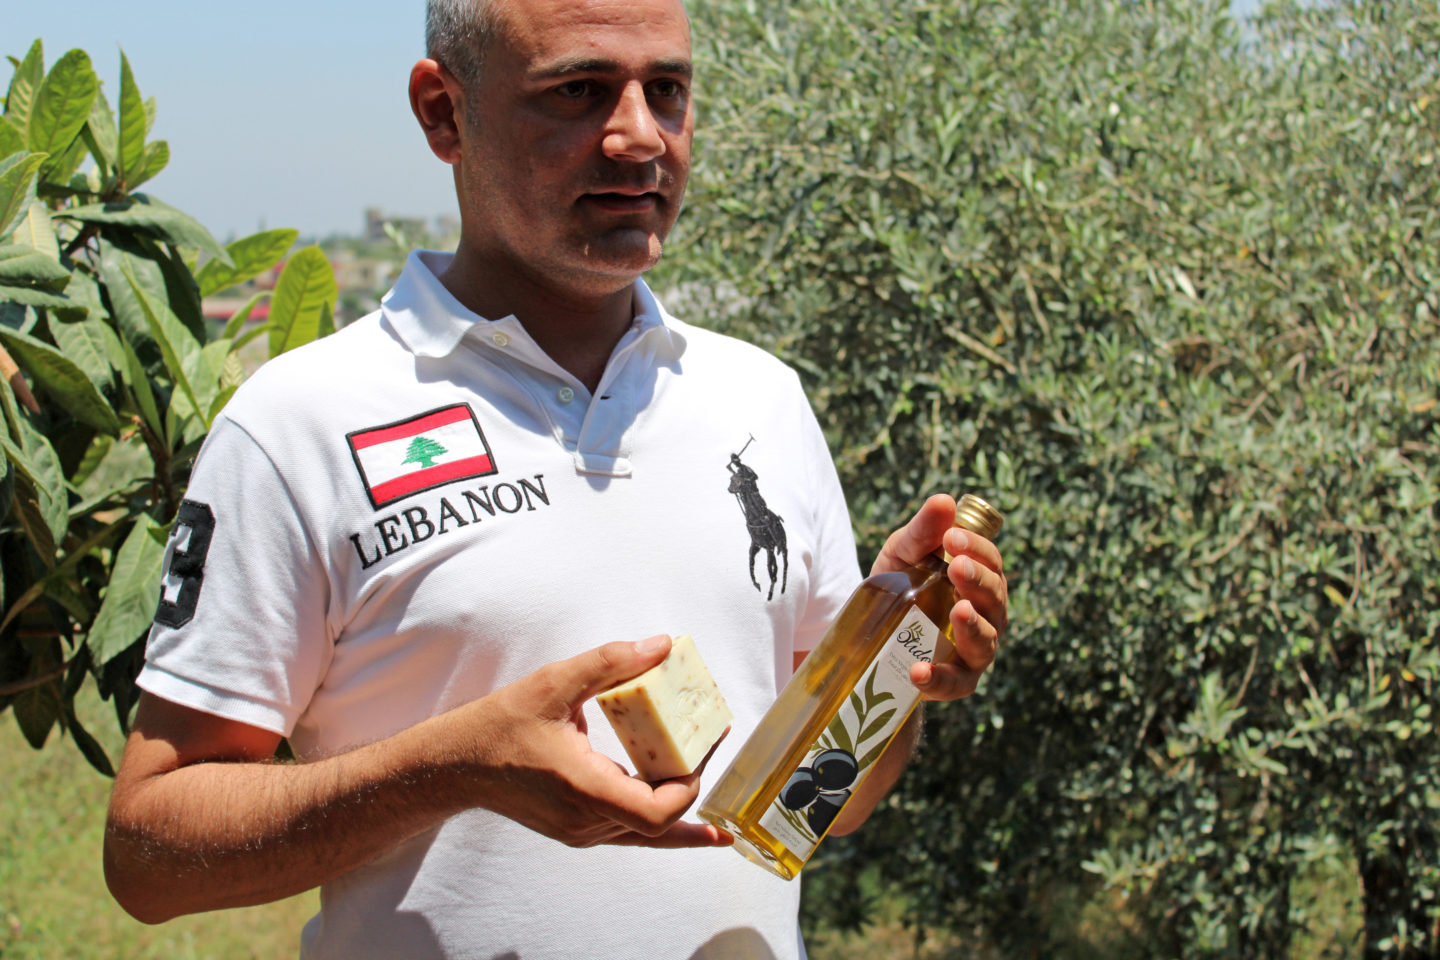 A rural food revolution is growing in Lebanon's olive groves |The Switchers